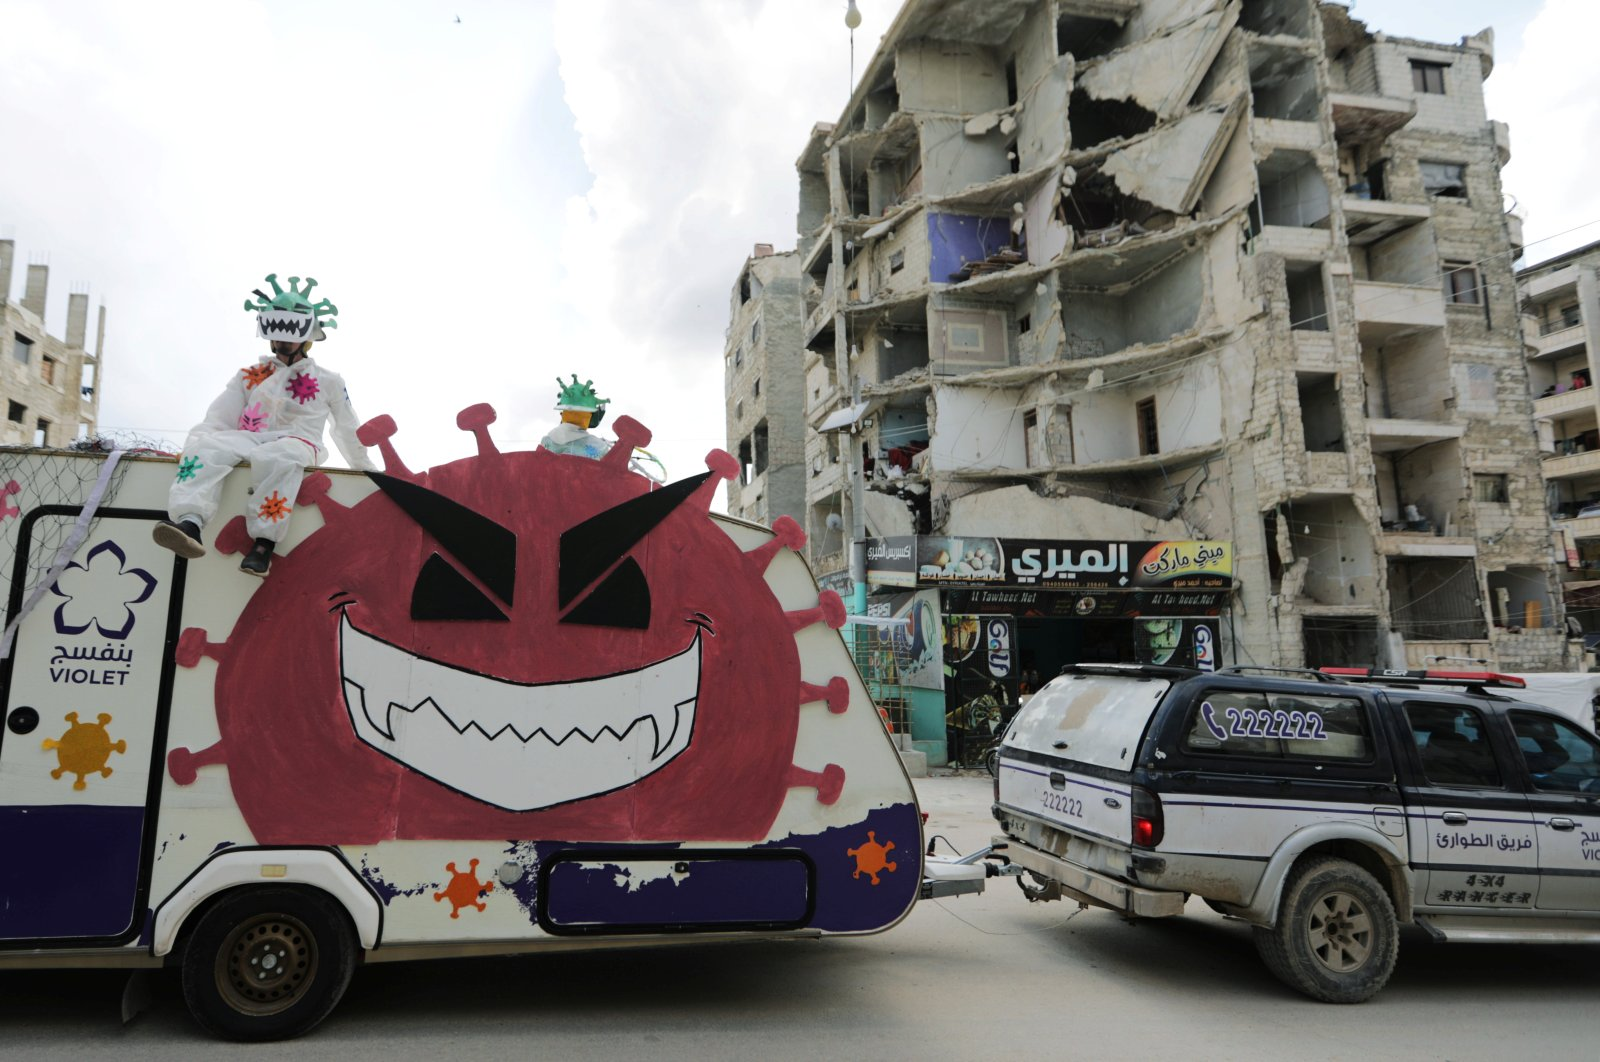 Volunteers dressed in coronavirus-themed costumes stand on a vehicle during a campaign organised by the Violet Organization, in an effort to spread awareness and encourage safety amid coronavirus disease (COVID-19) fears, in the opposition-held Idlib city, Syria, April 29, 2020. (REUTERS Photo)